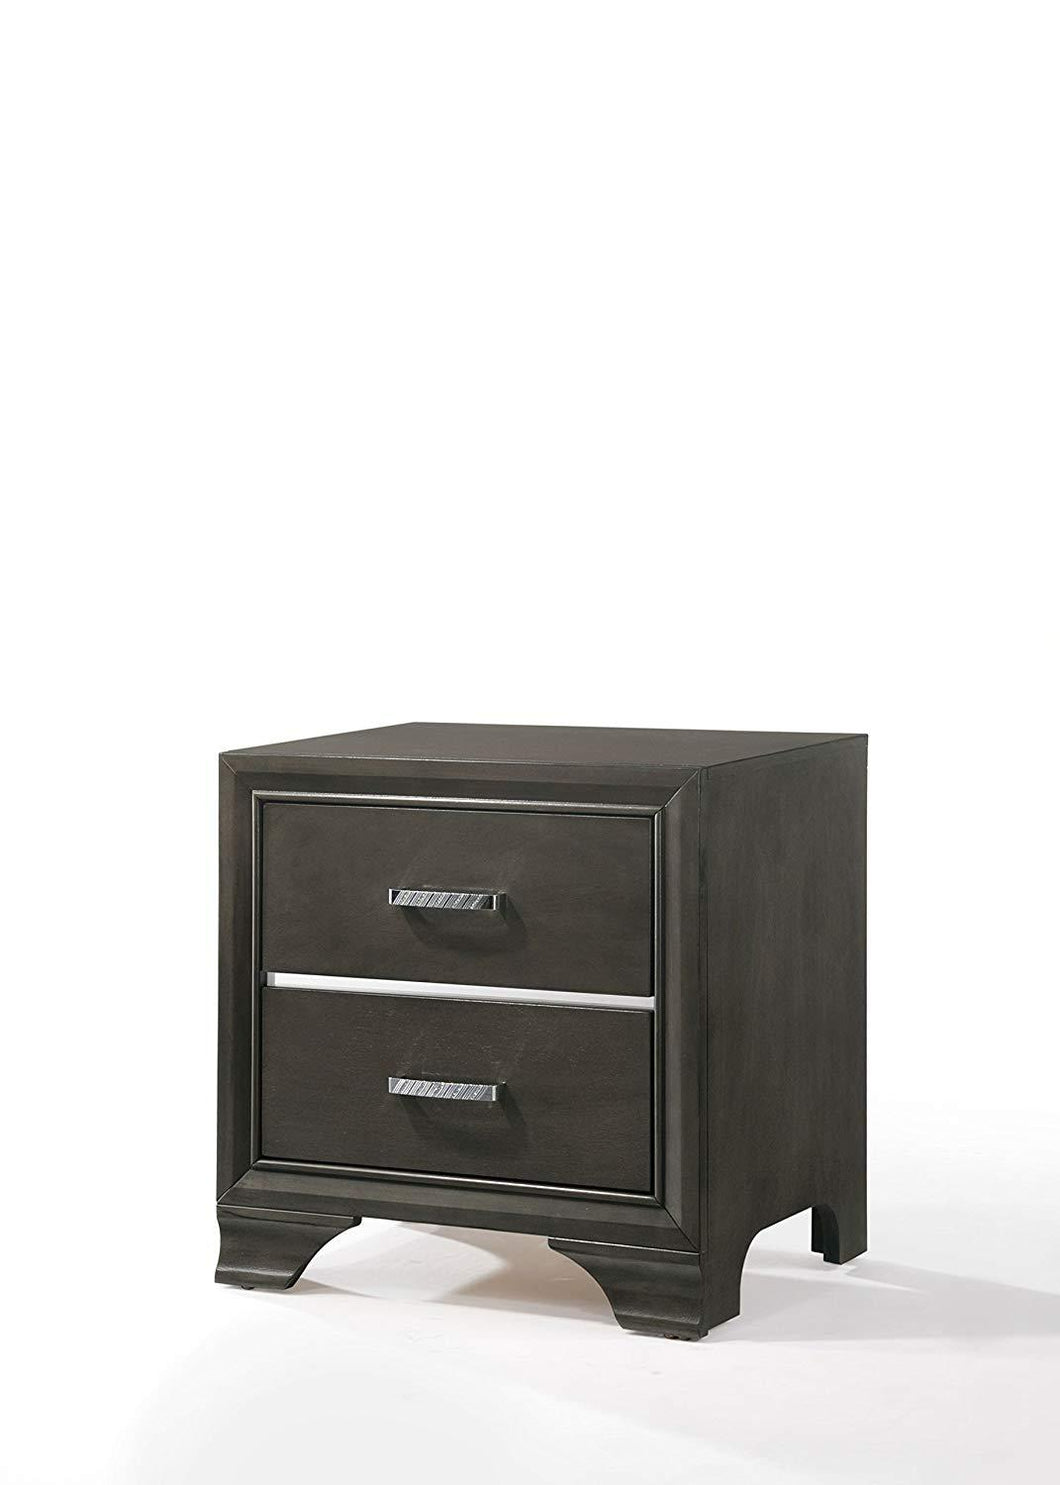 Acme Carine II Gray Wood Finish Nightstand